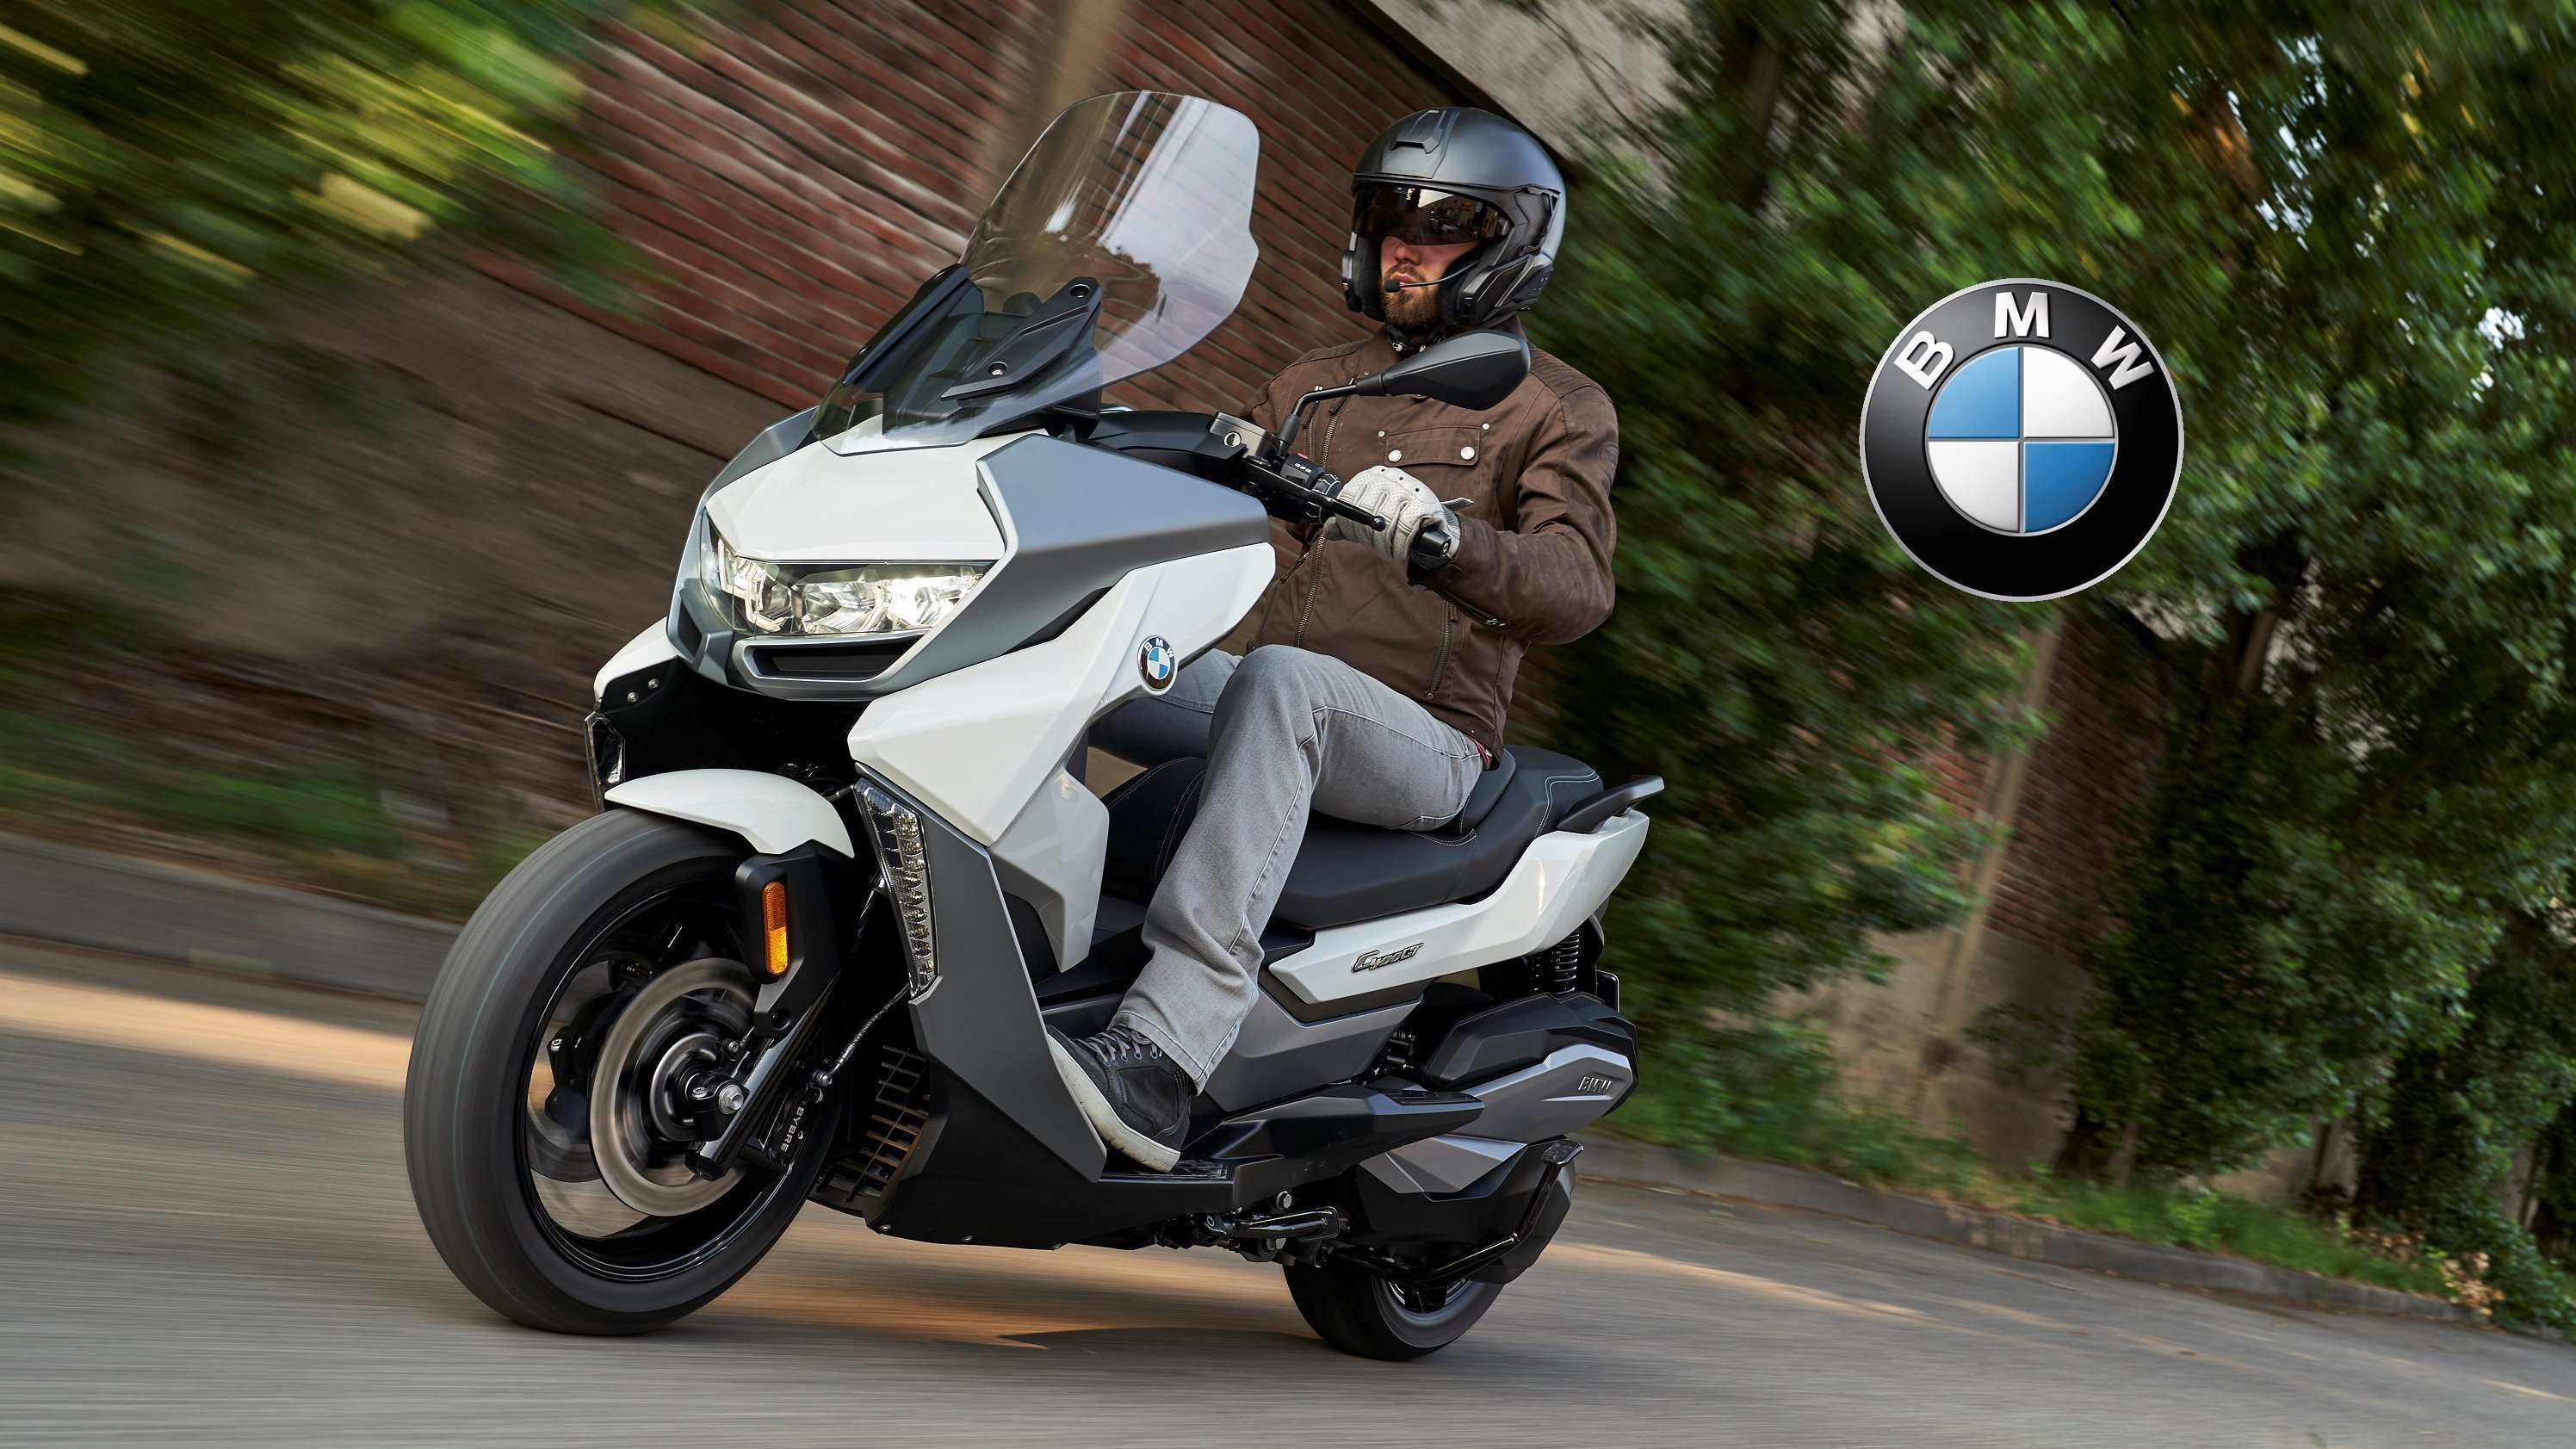 25 Gallery of Bmw C 2019 Images for Bmw C 2019